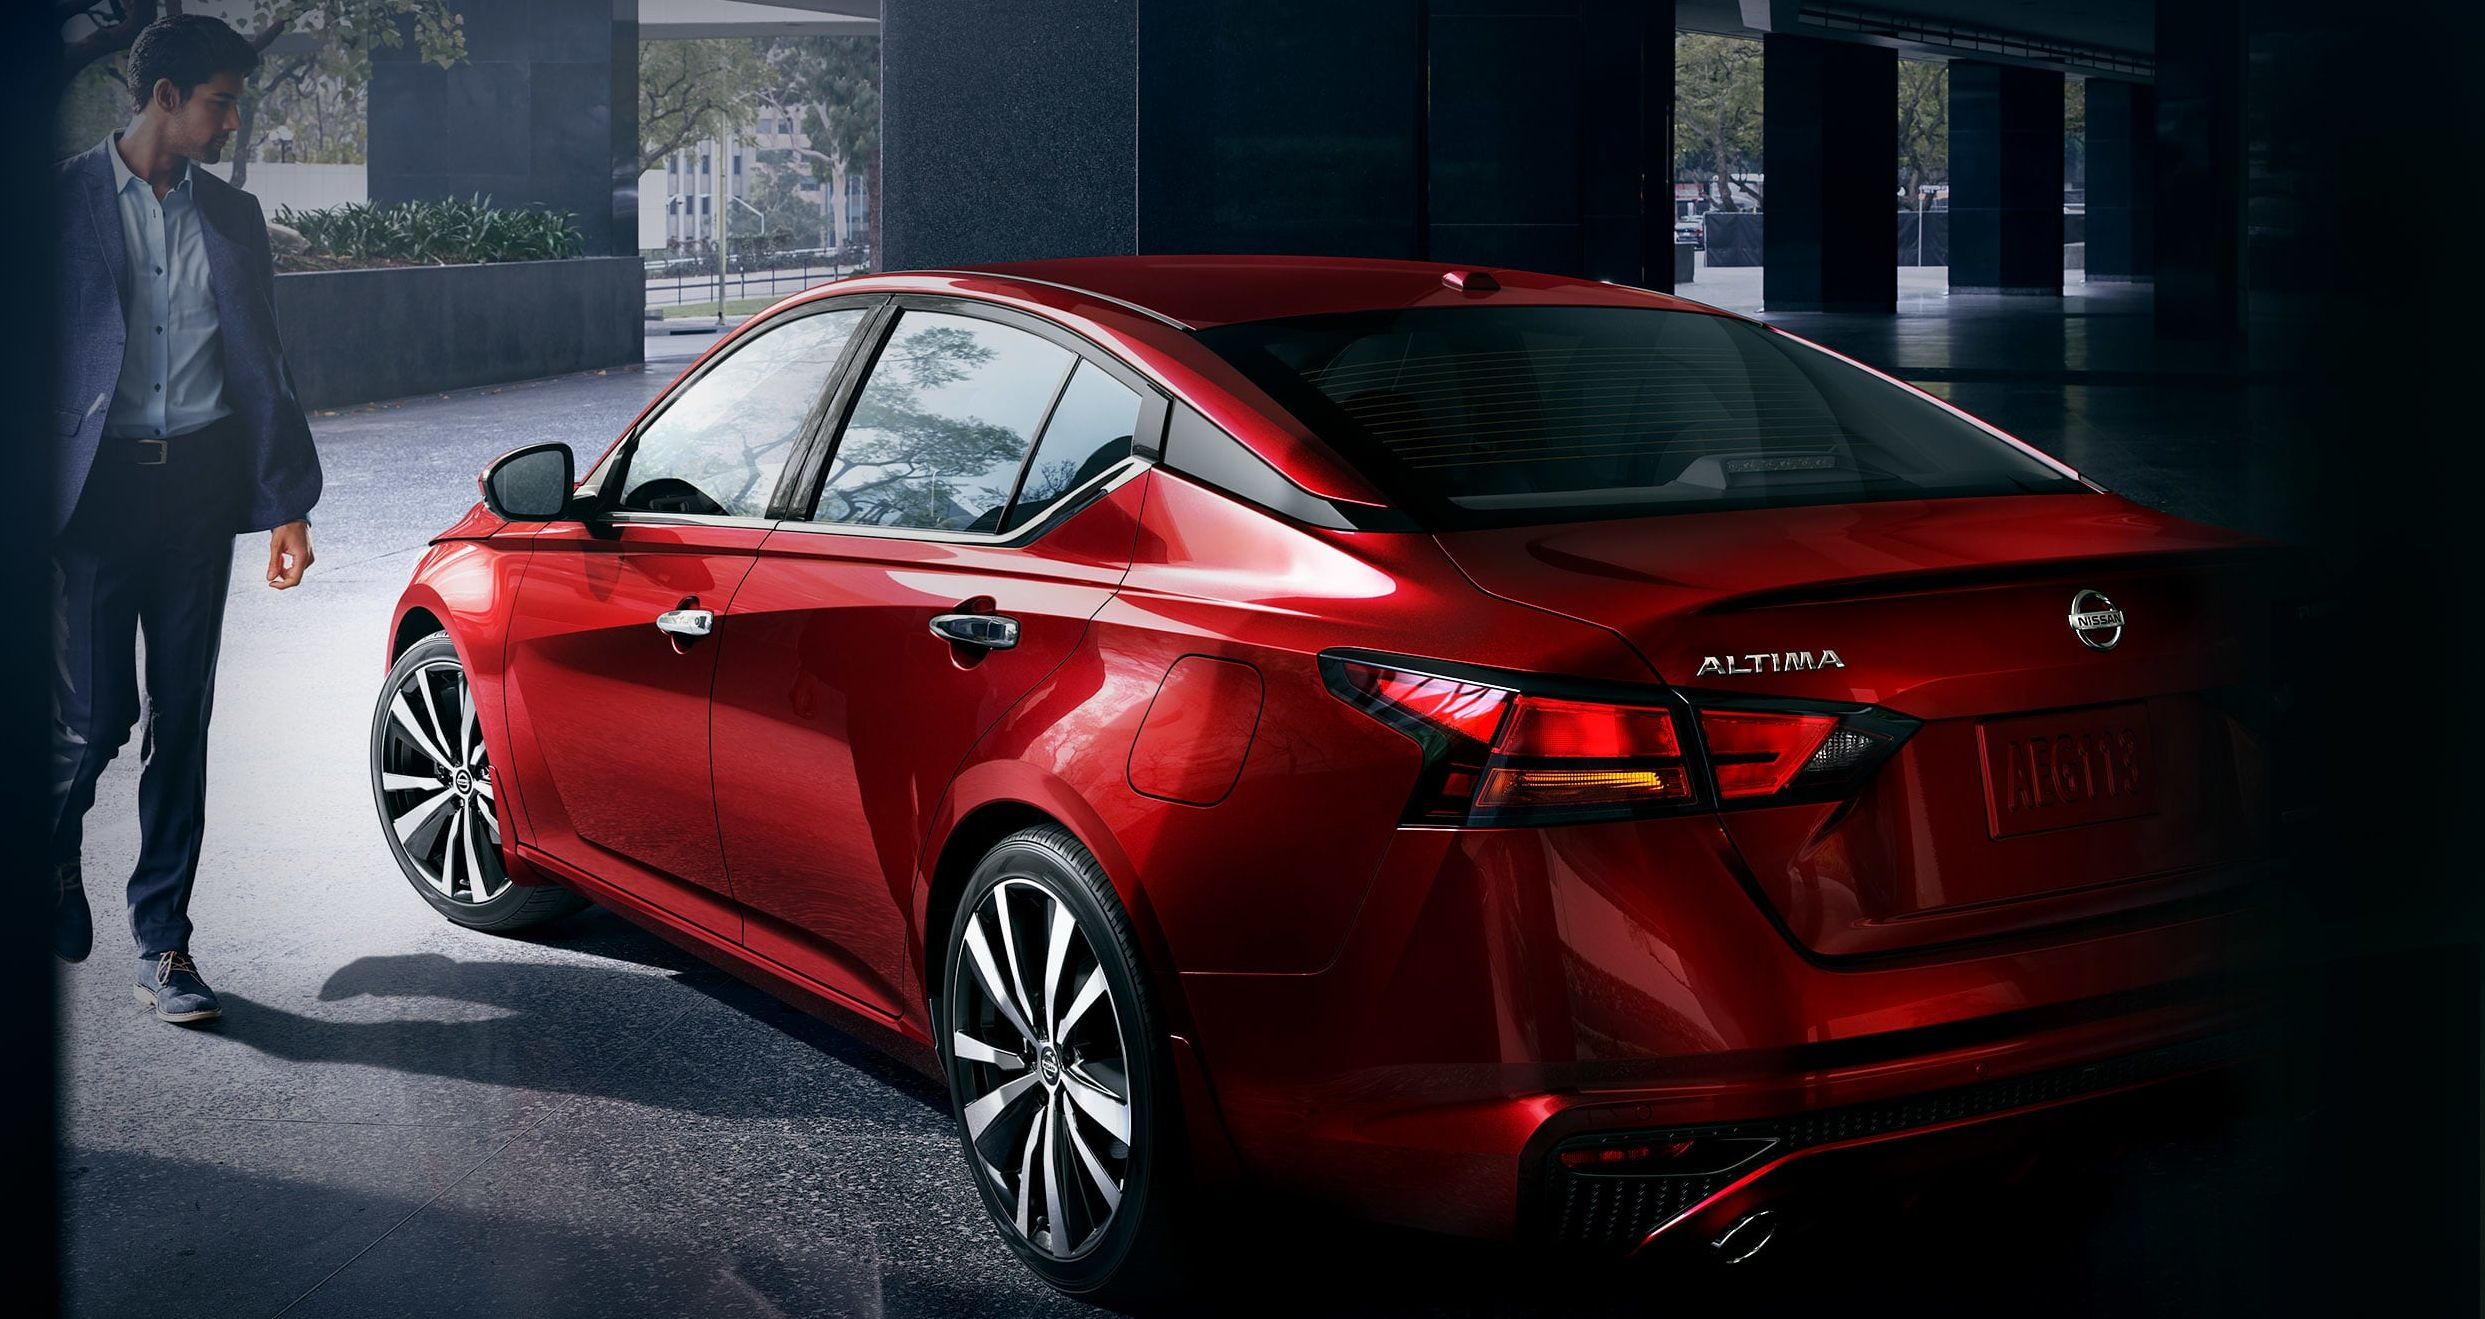 2019 Nissan Altima Leasing near Burbank, IL